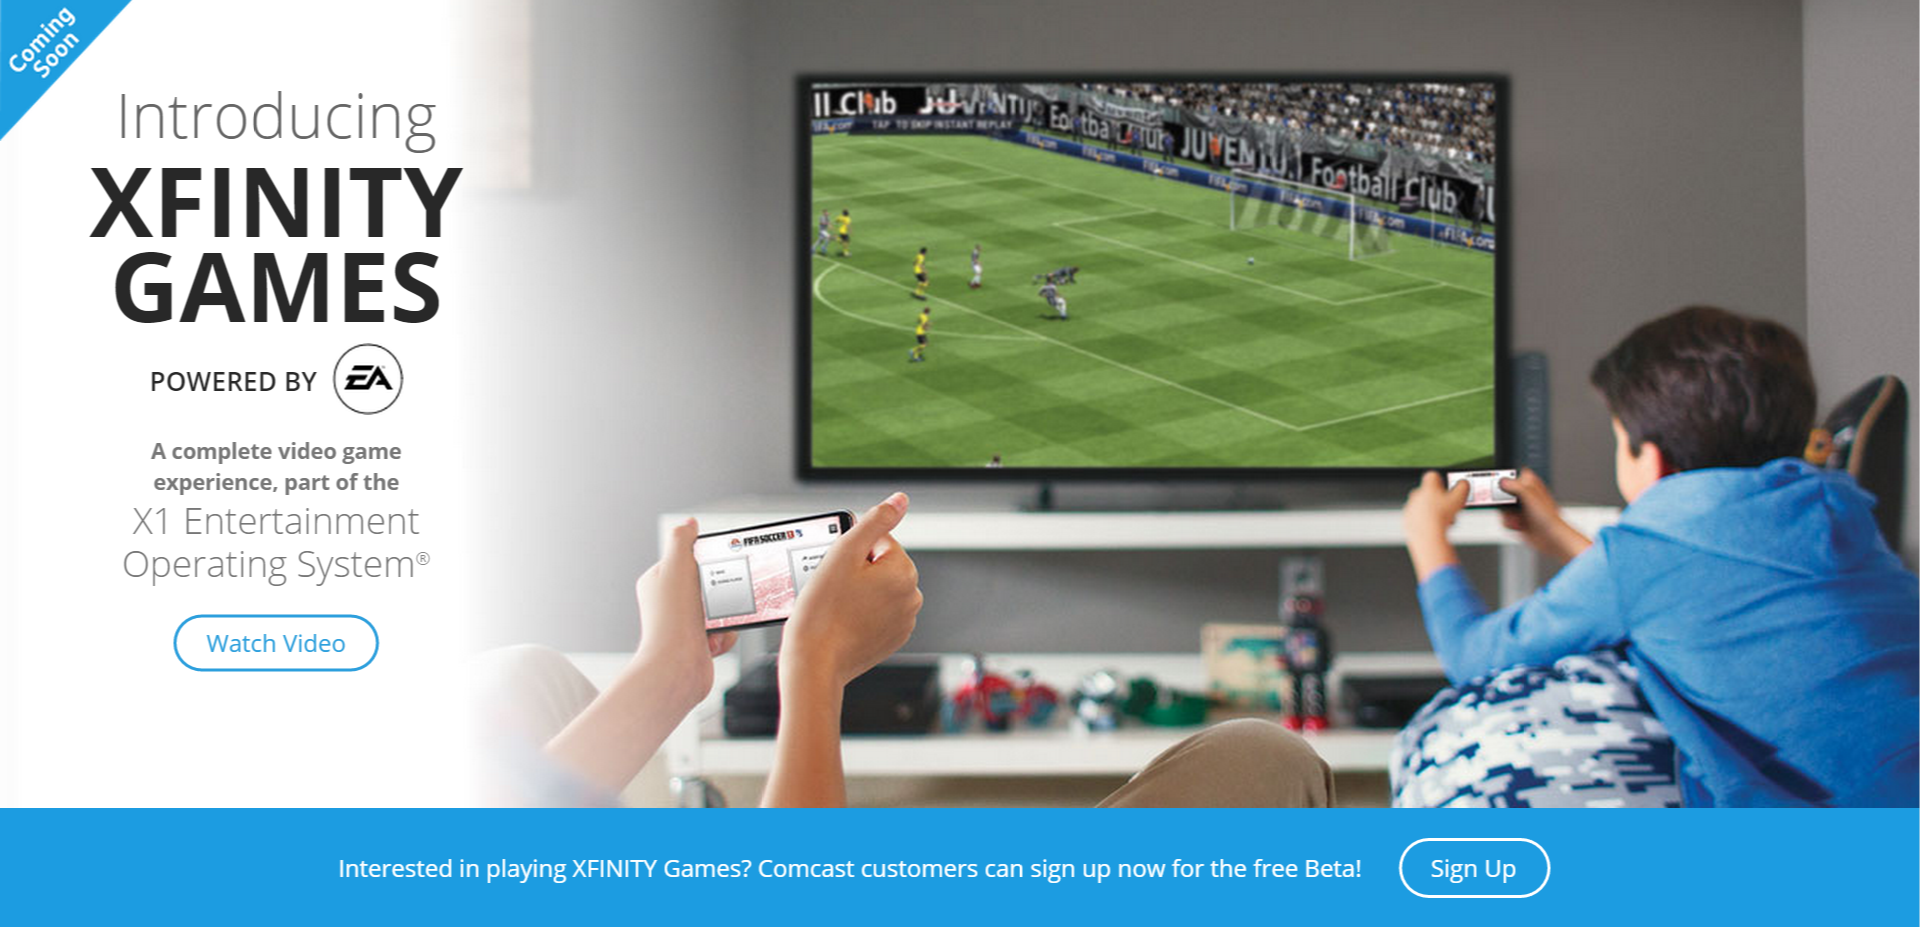 EA Partners With Comcast For Xfinity Games, Game Streaming